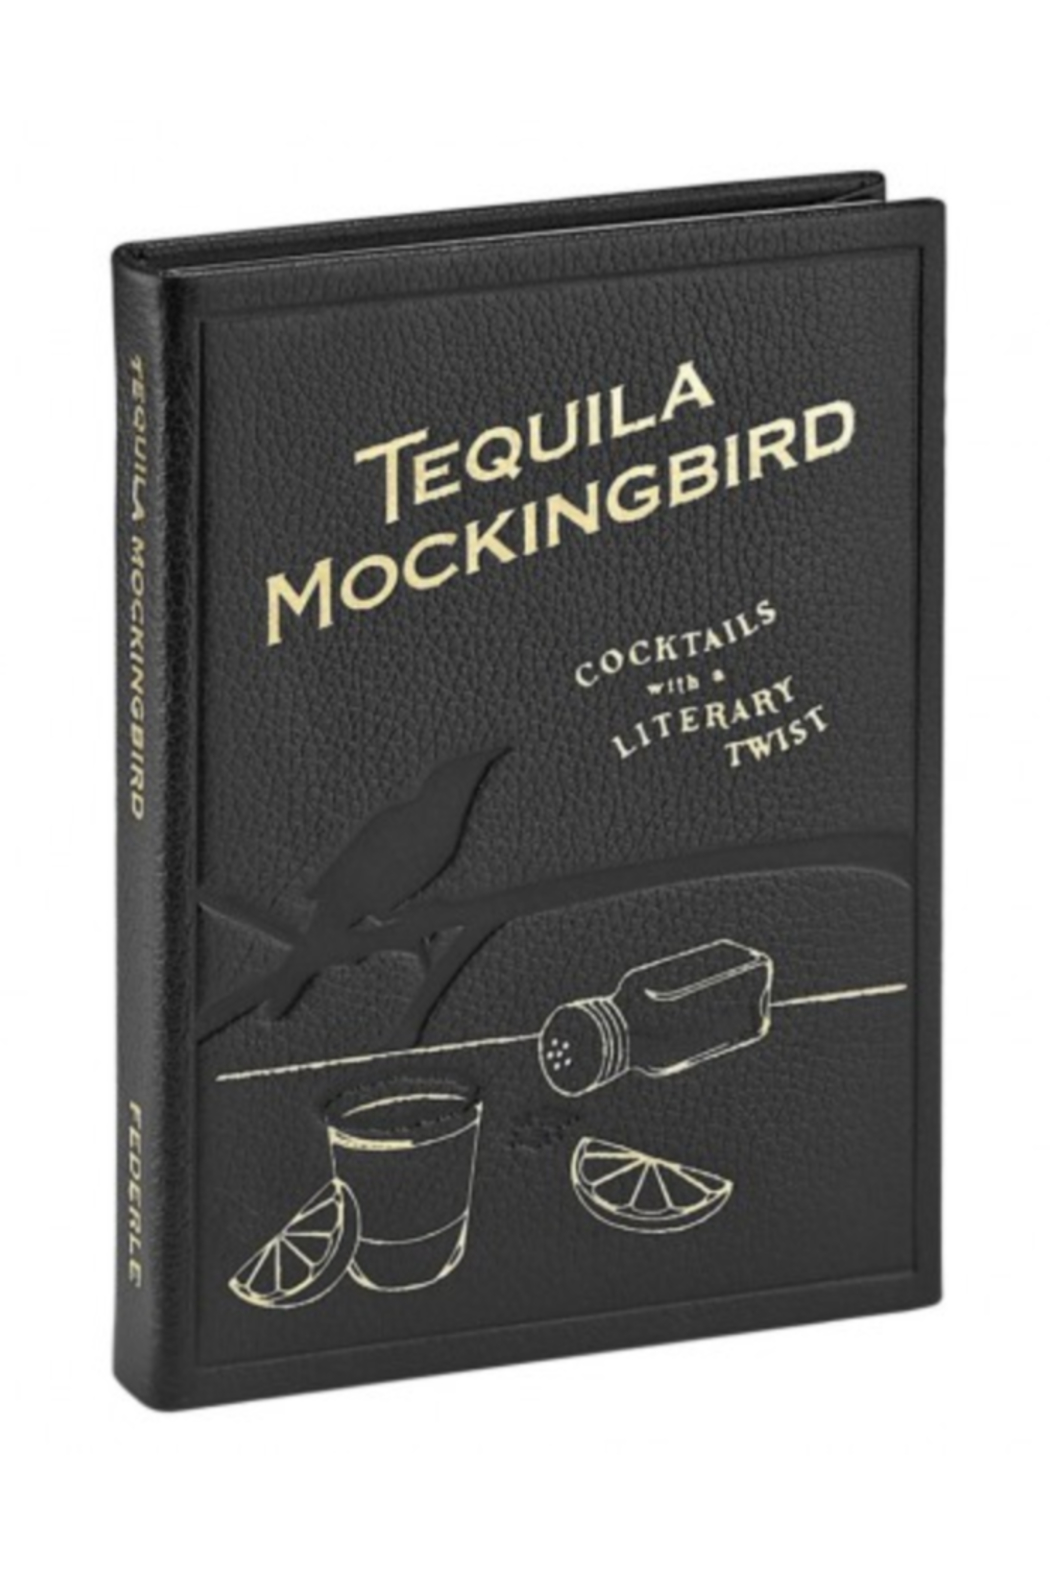 The Birds Nest TEQUILA MOCKINGBIRD: COCKTAILS WITH A LITERARY TWIST - Main Image